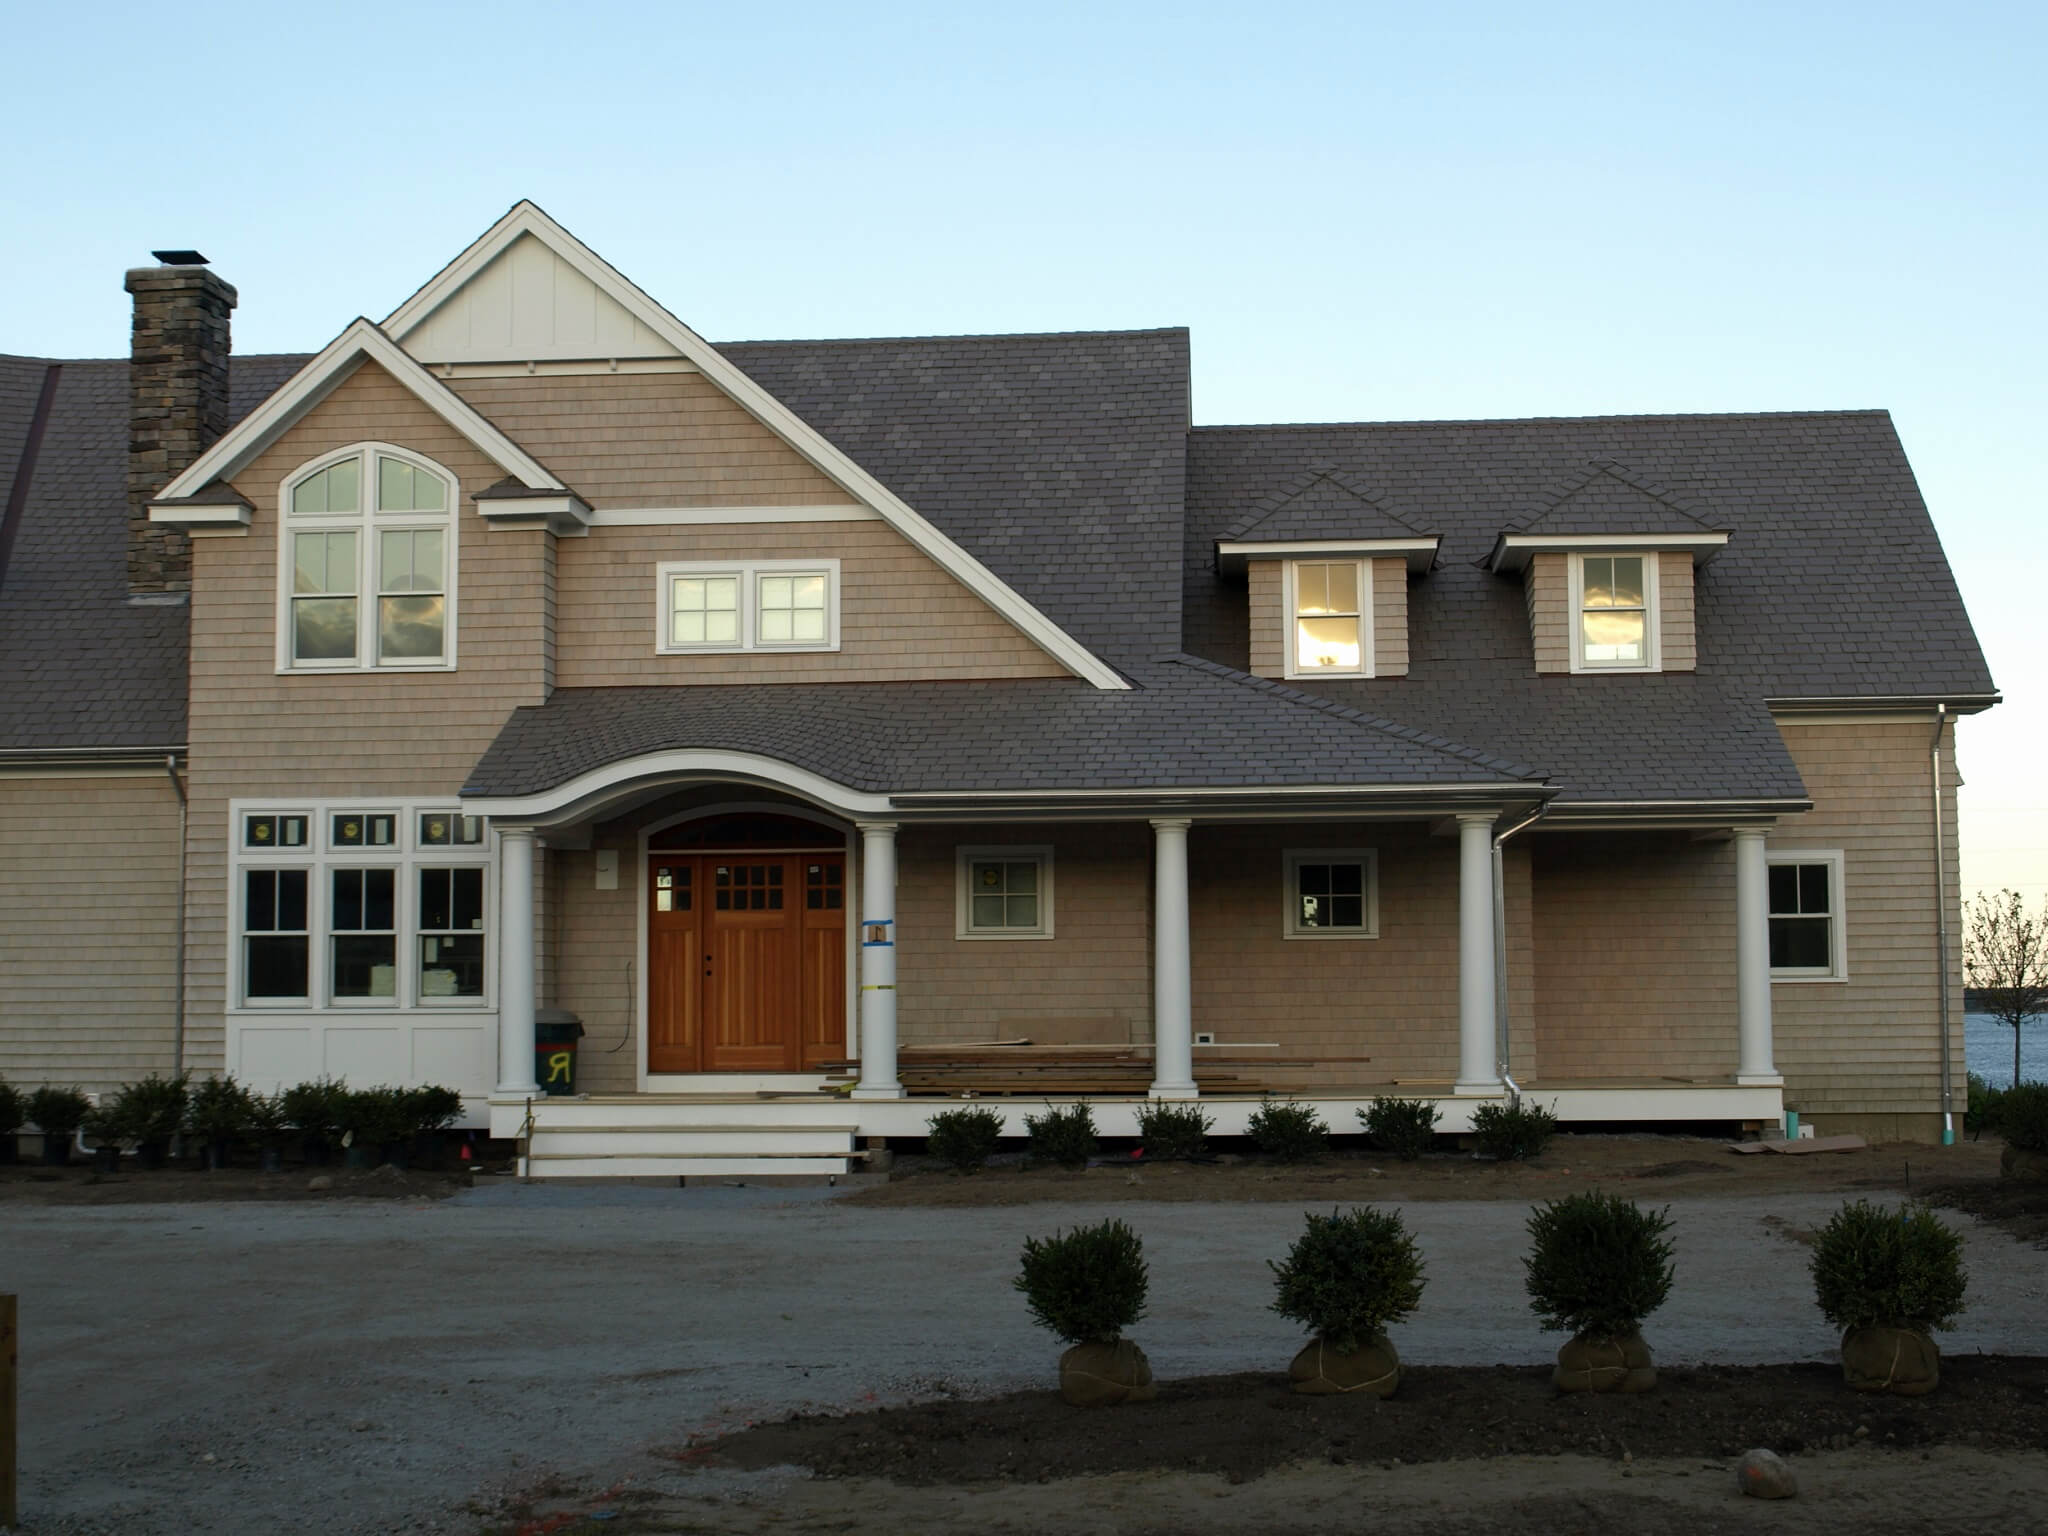 Diverse House Roof Types That Works For All Homes